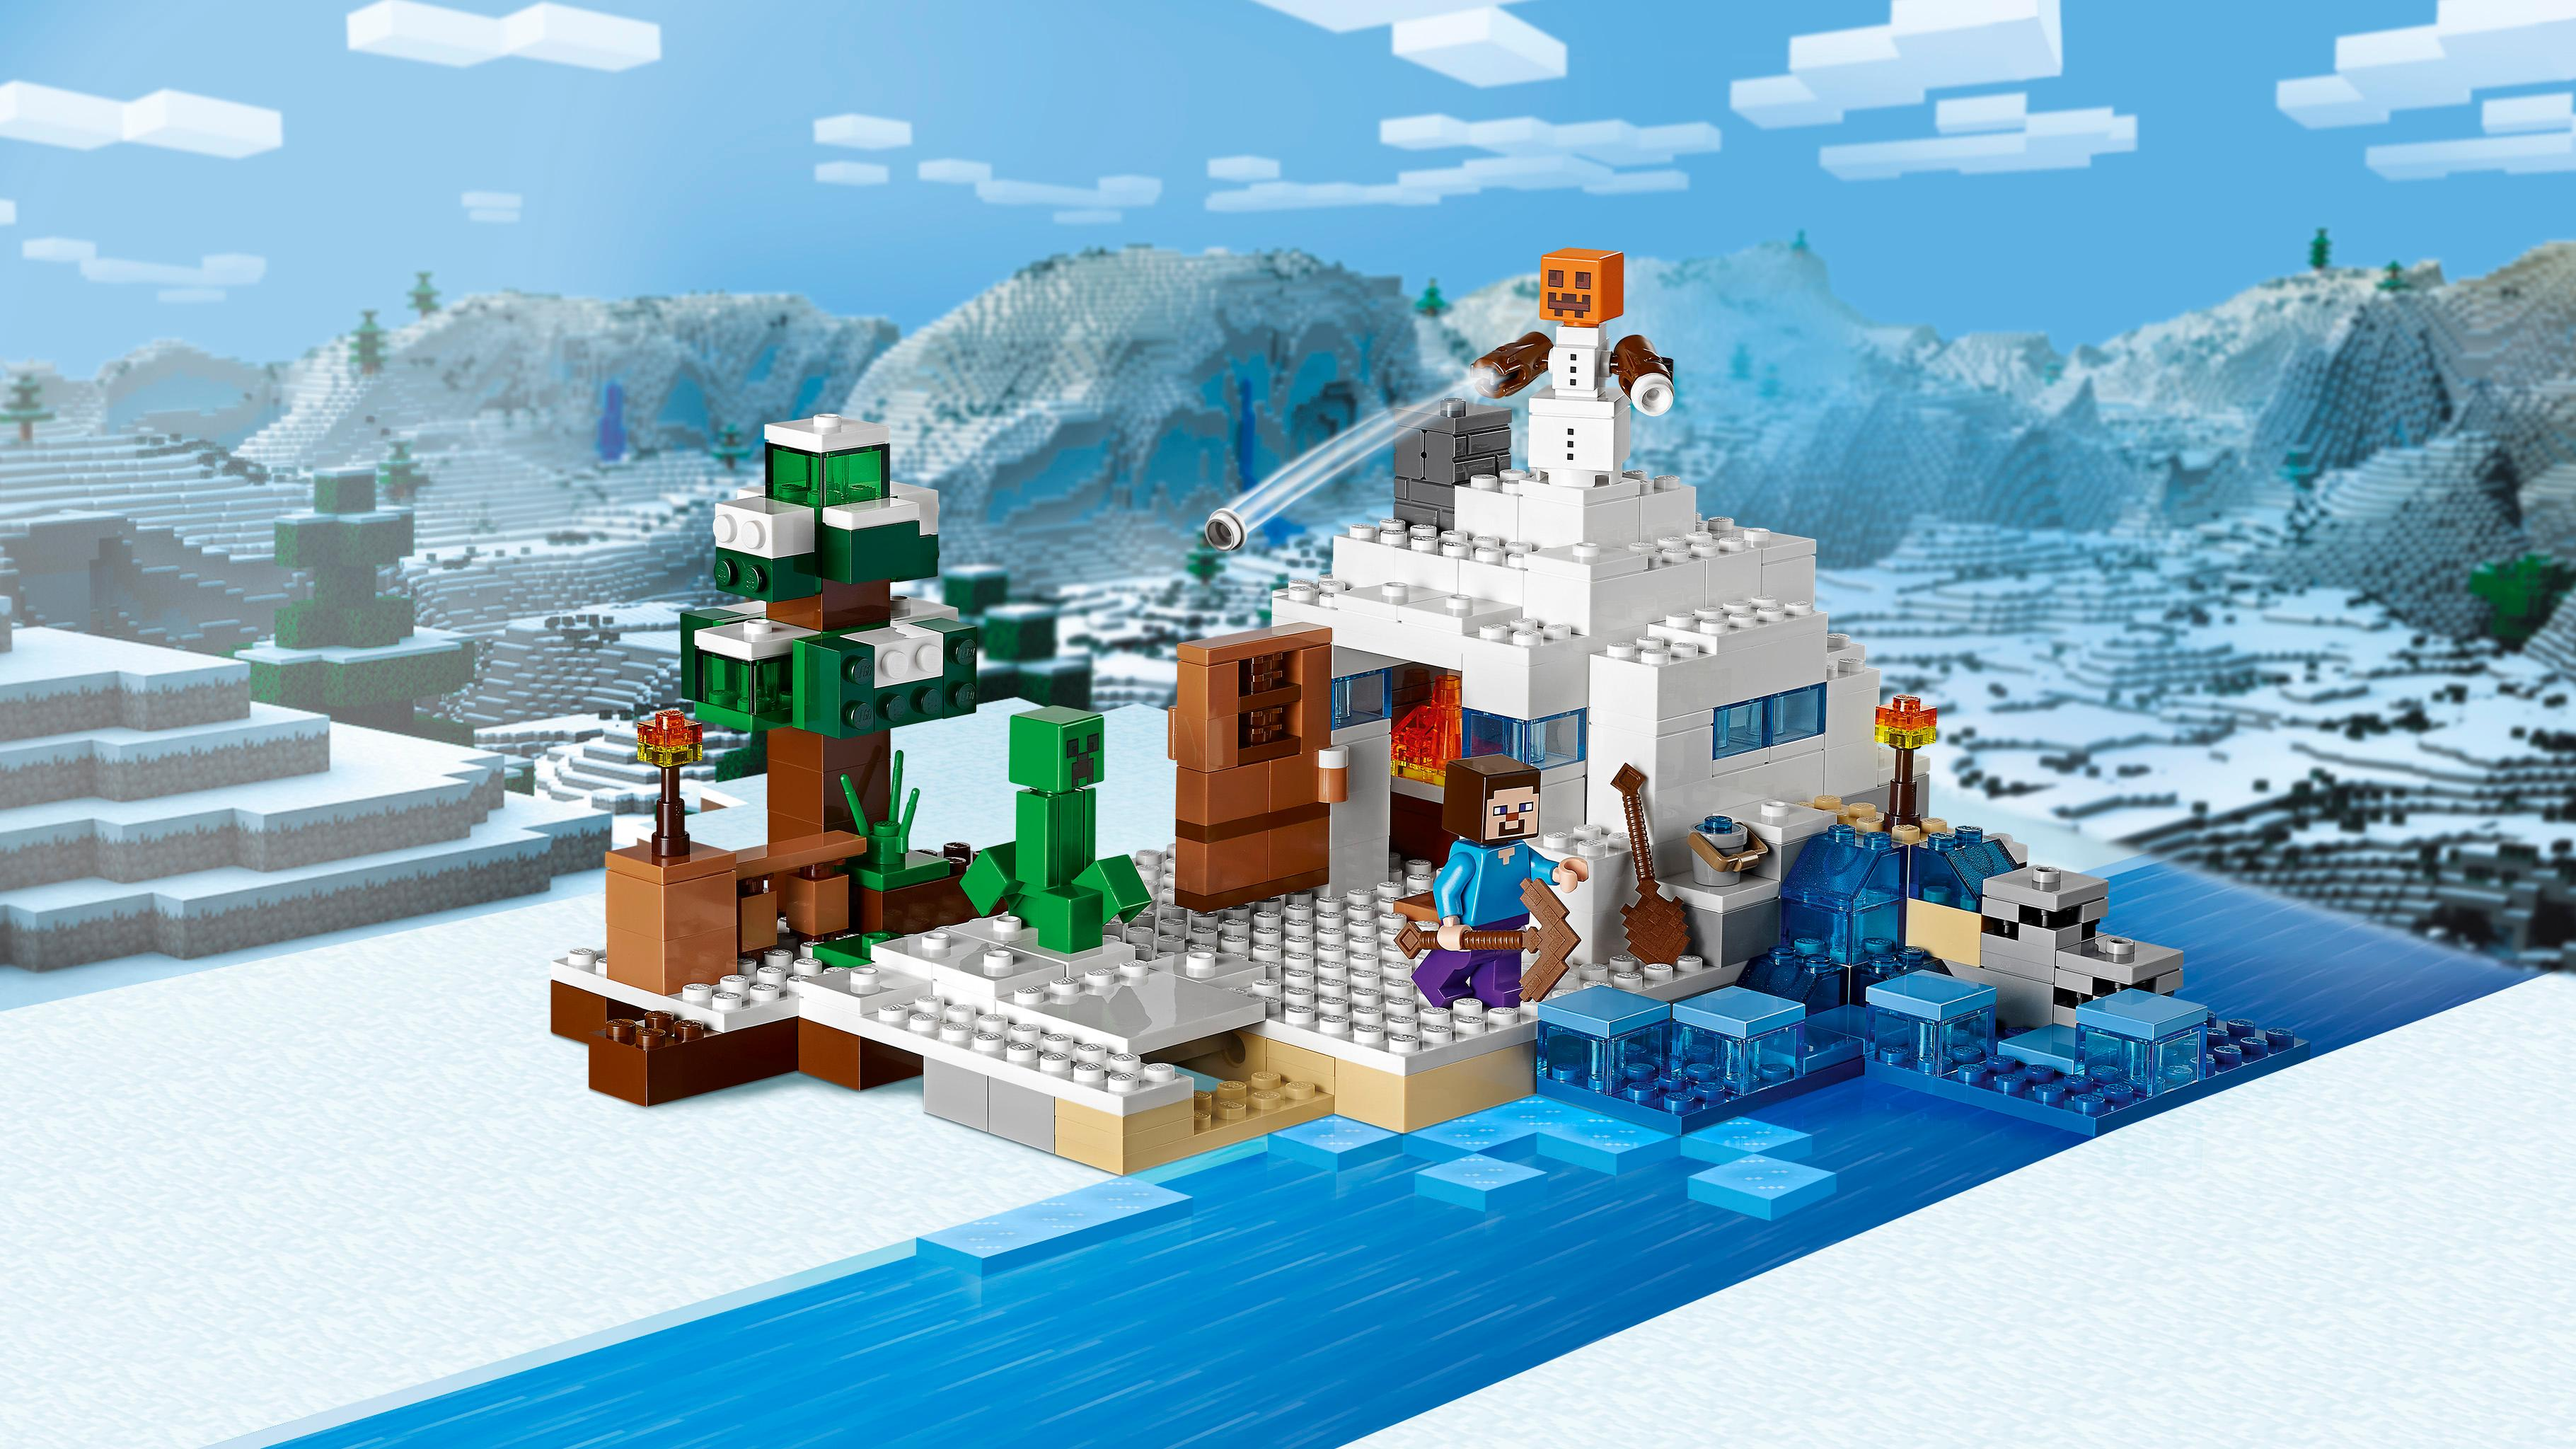 Lego Minecraft The Snow Hideout 21120 Minecraft Toy